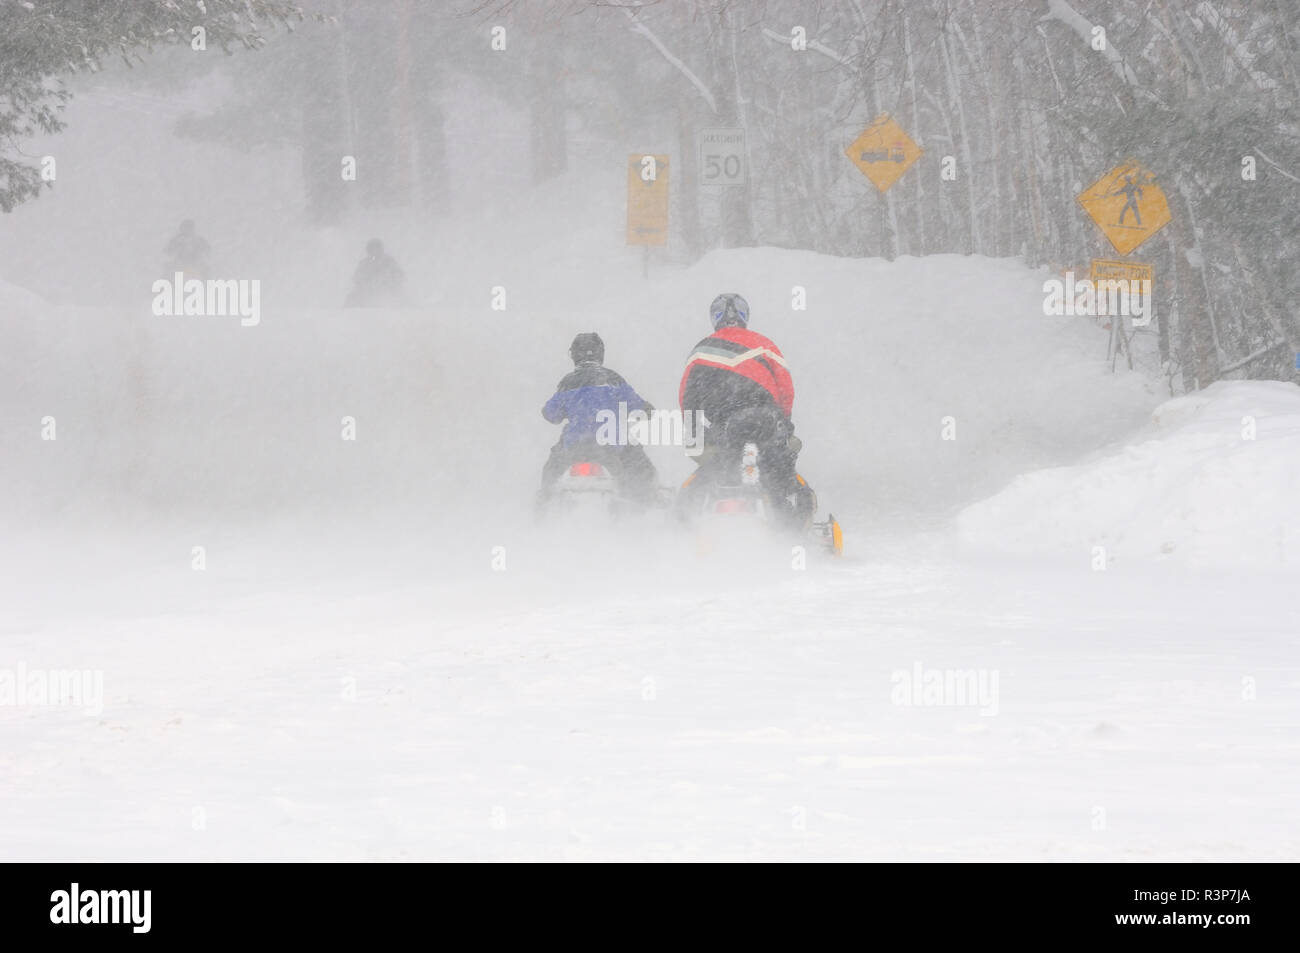 Canada, Ontario, Dorset. Snowmobiles on country road. - Stock Image